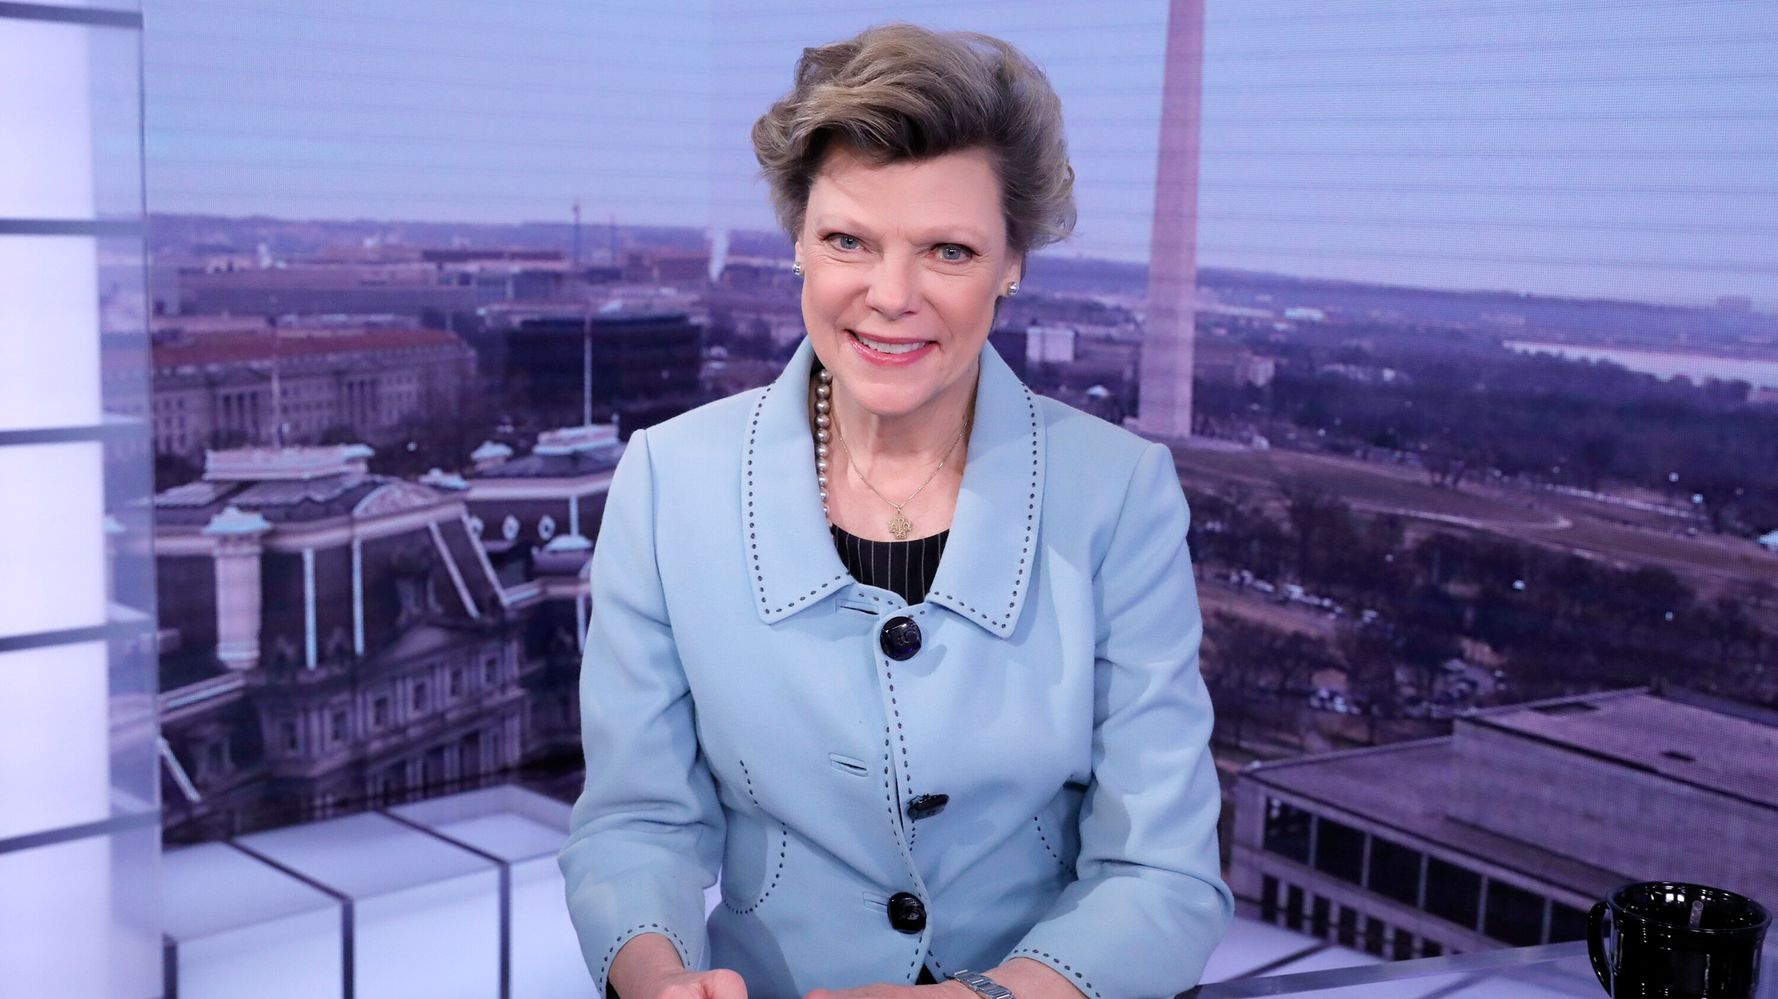 Cokie Roberts, Longtime ABC News Reporter, Dead At 75